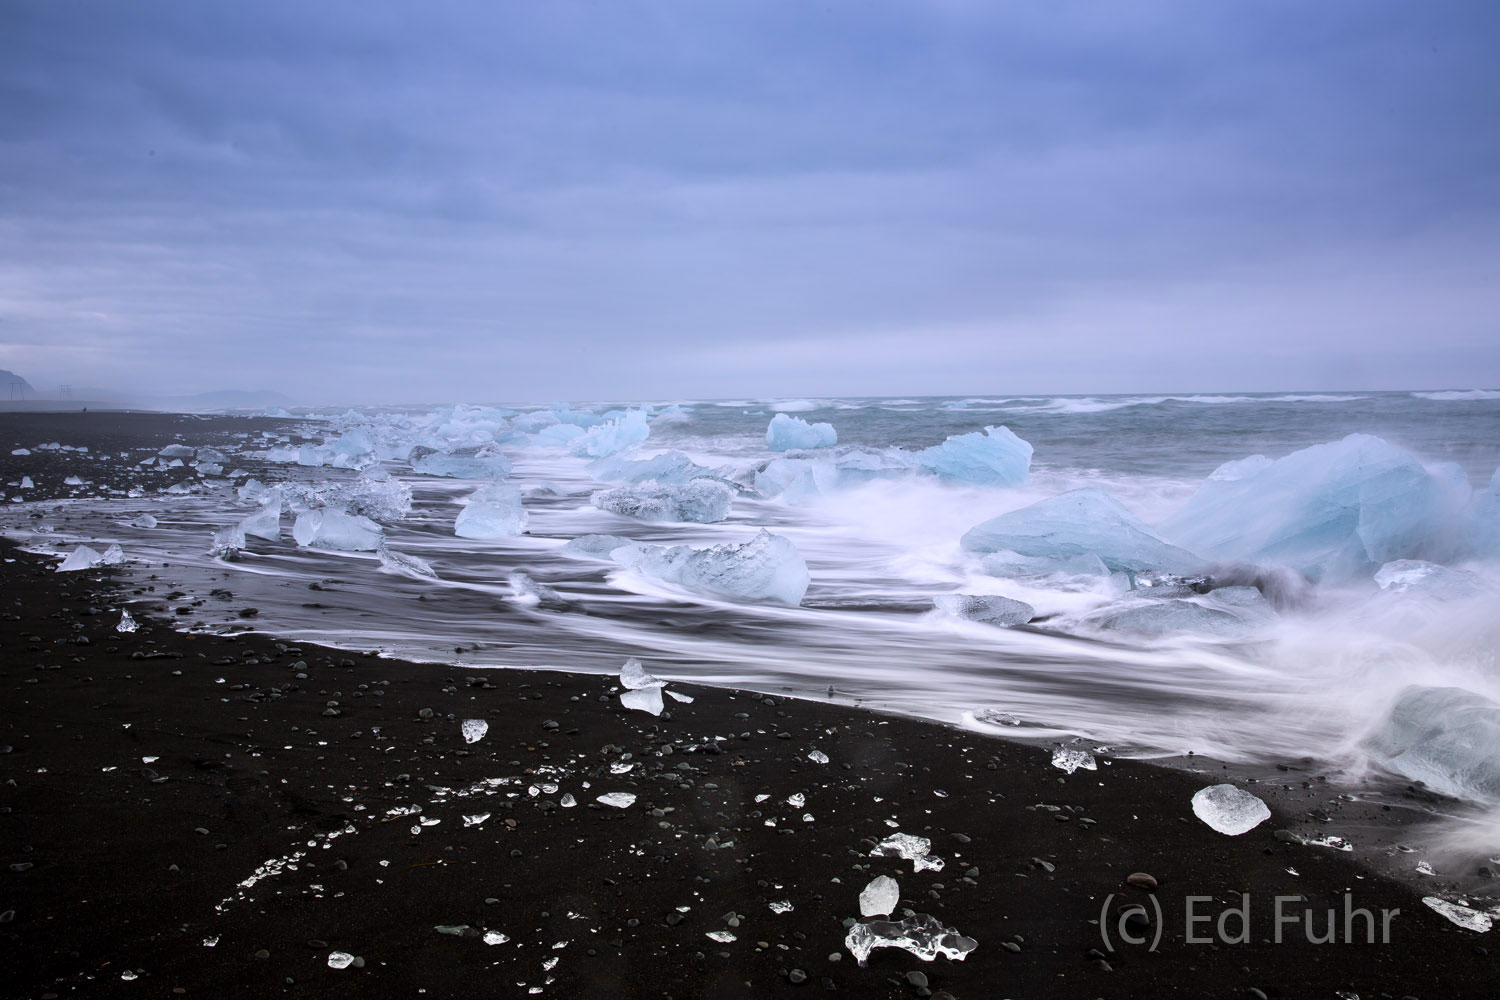 Every day the tide enters and leaves the Jokulsaron Lagoon via a quarter mile inlet, sweeping icebergs into the North Atlantic...